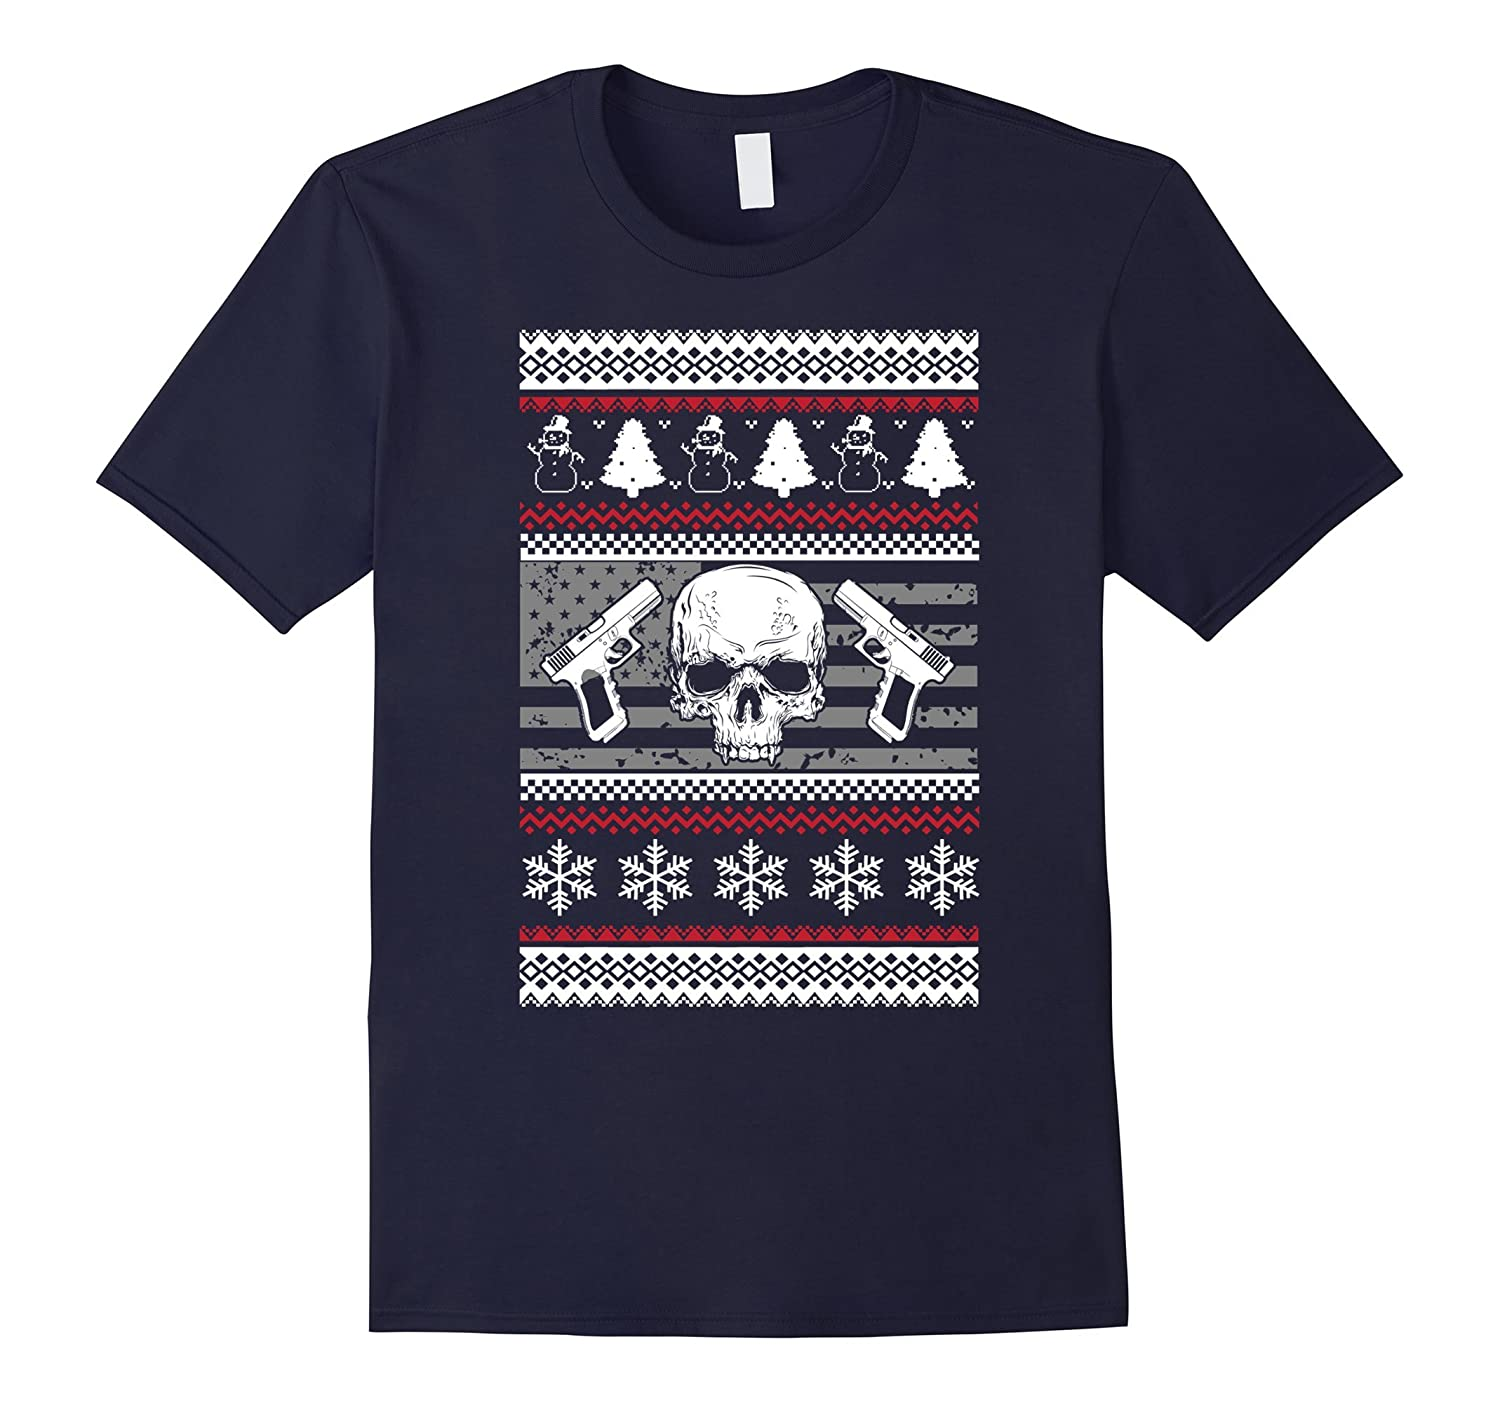 2nd Amendment Ugly Christmas Sweater Style Shirt Xmas Guns-CL